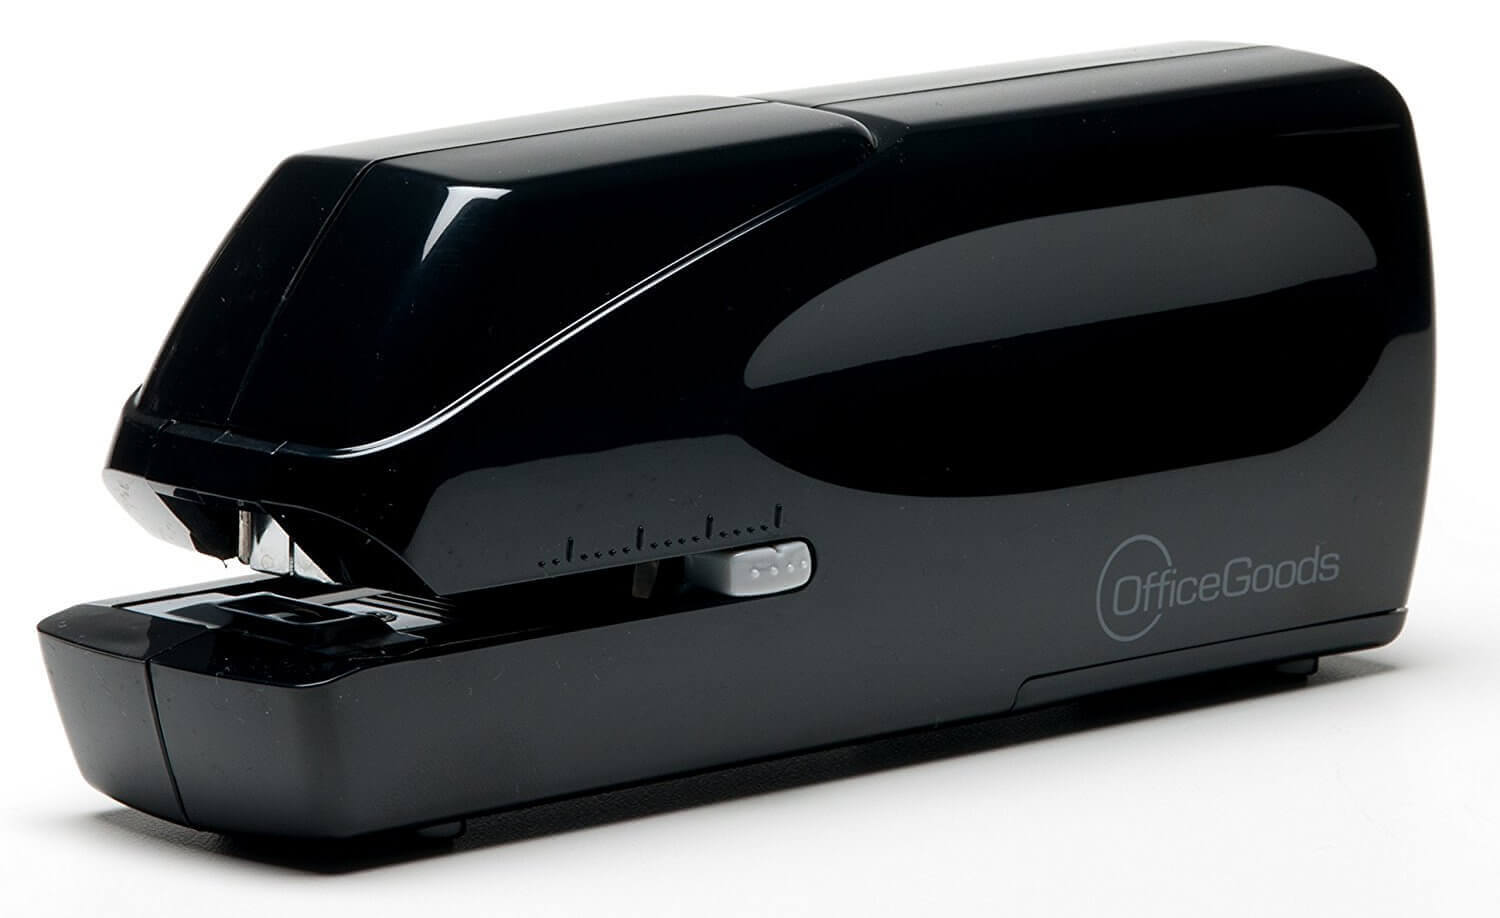 OfficeGoods Electric and Battery Operated Stapler